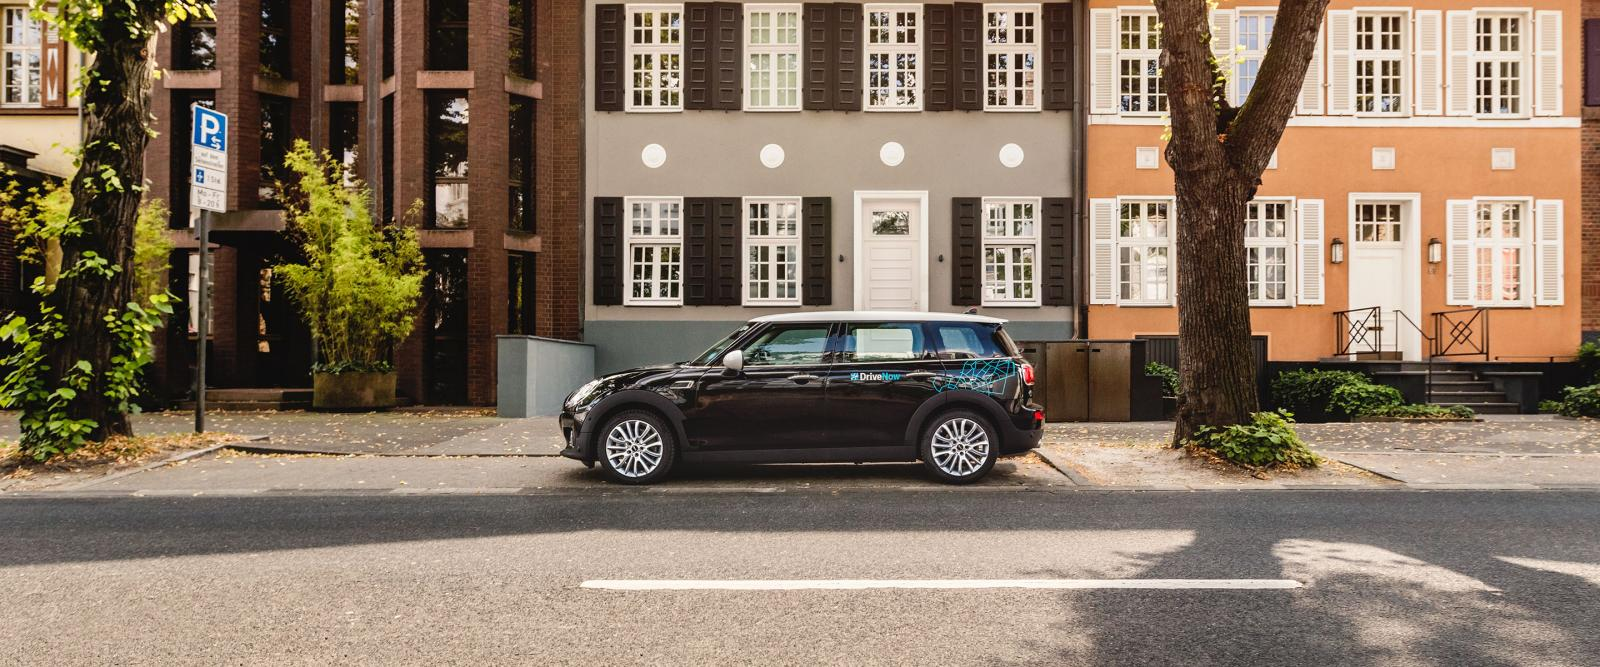 drivenow_dusseldorf_mini_clubman_parking_blog